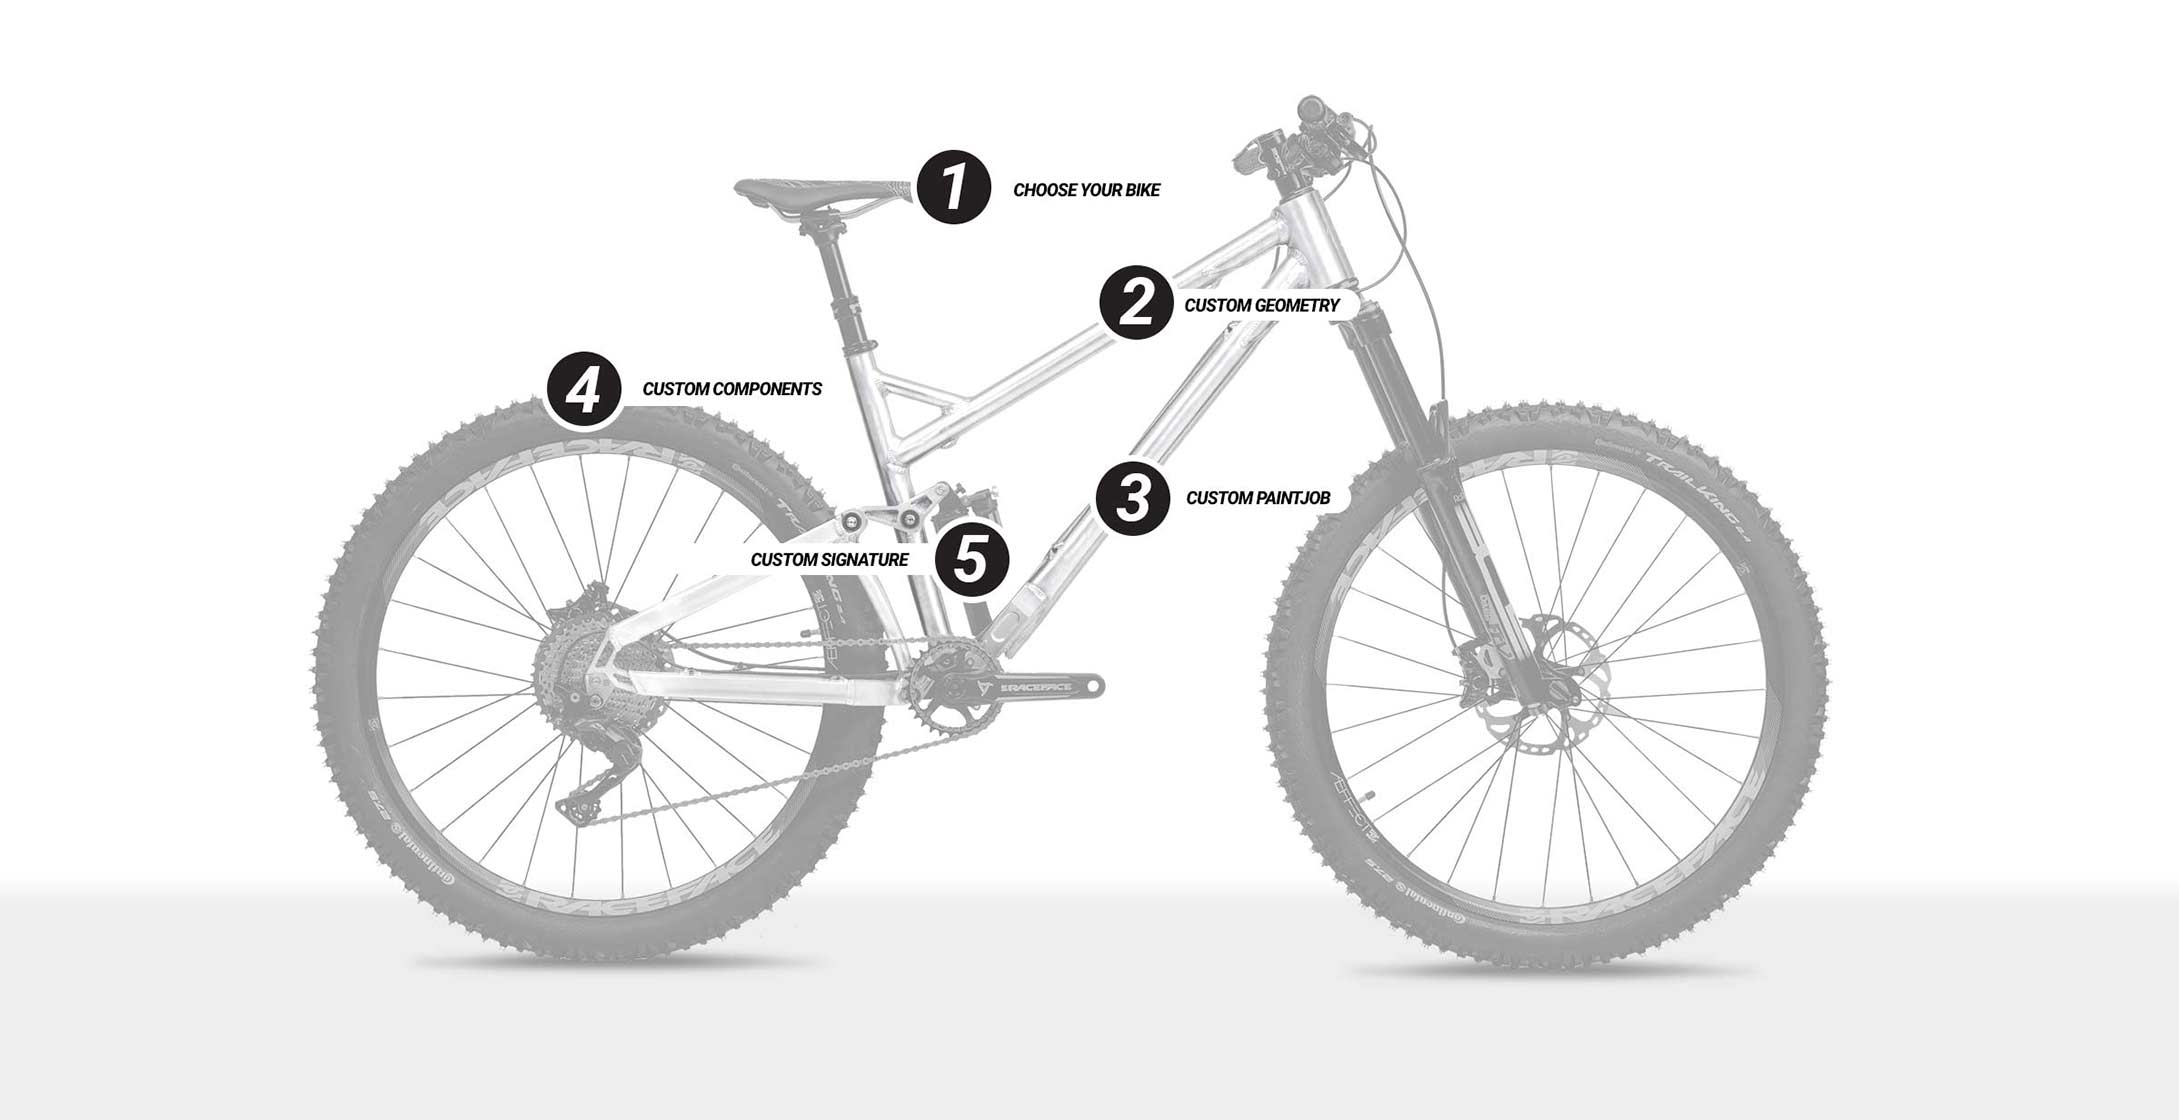 Custom bike - choose your details